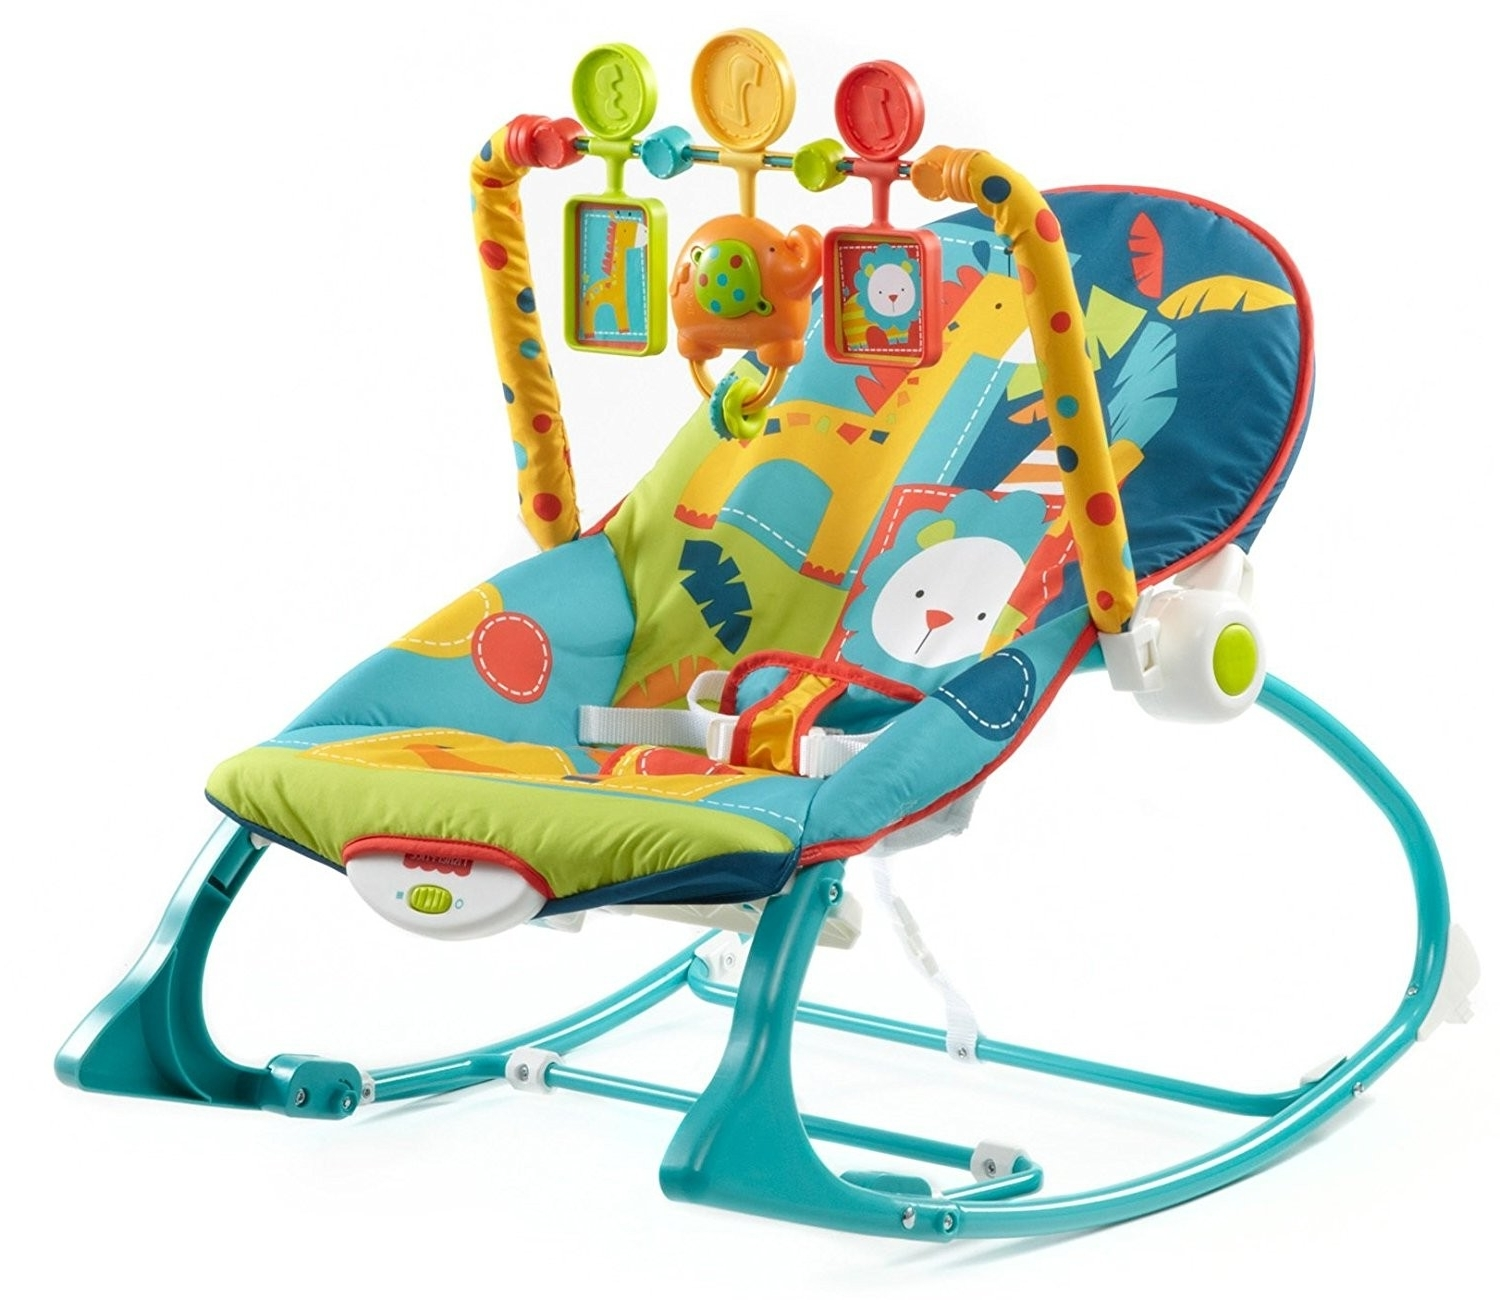 Rocking Chair For Baby – Torino2017 Intended For Most Up To Date Rocking Chairs For Babies (View 10 of 15)